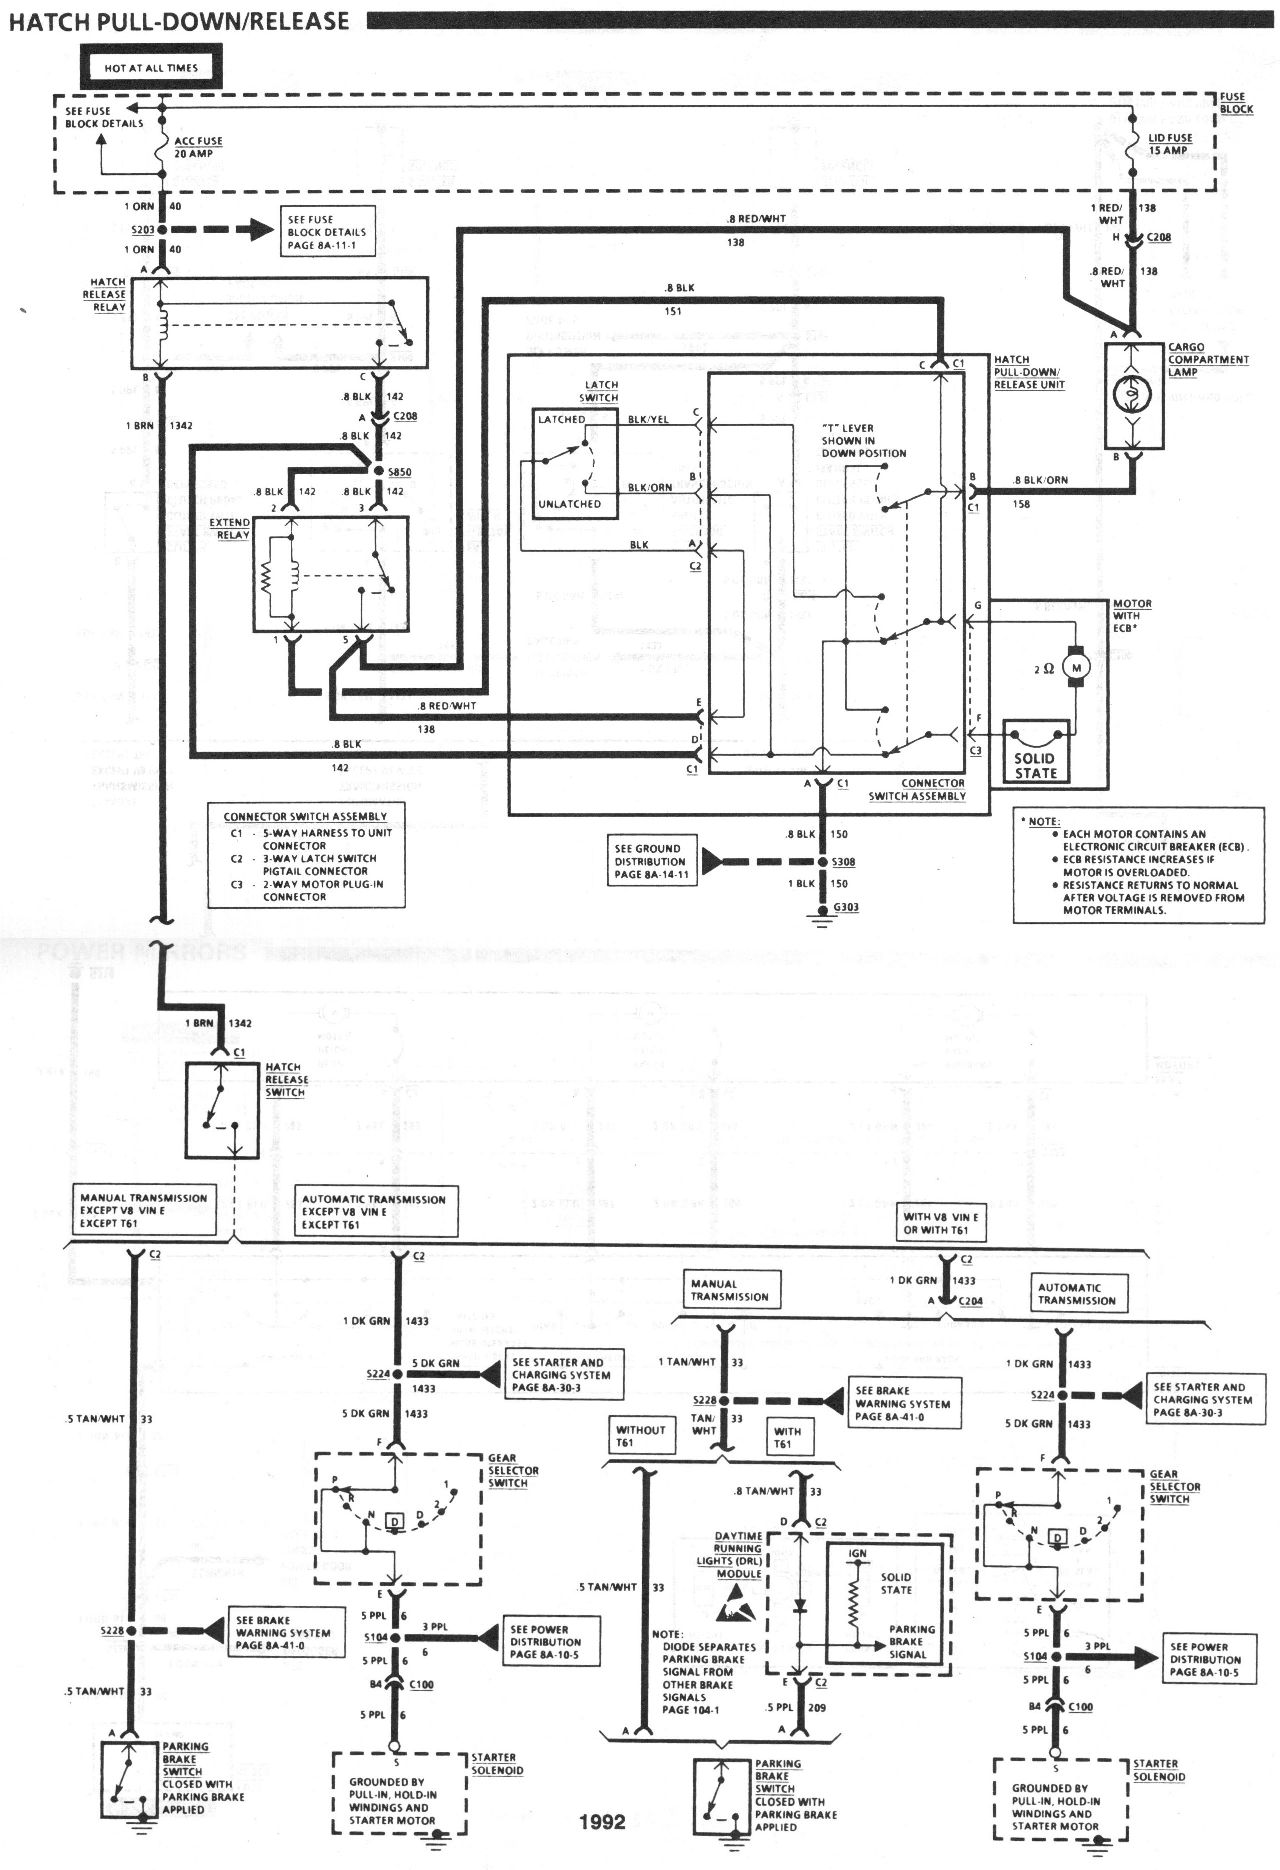 89 iroc fuse box   16 wiring diagram images